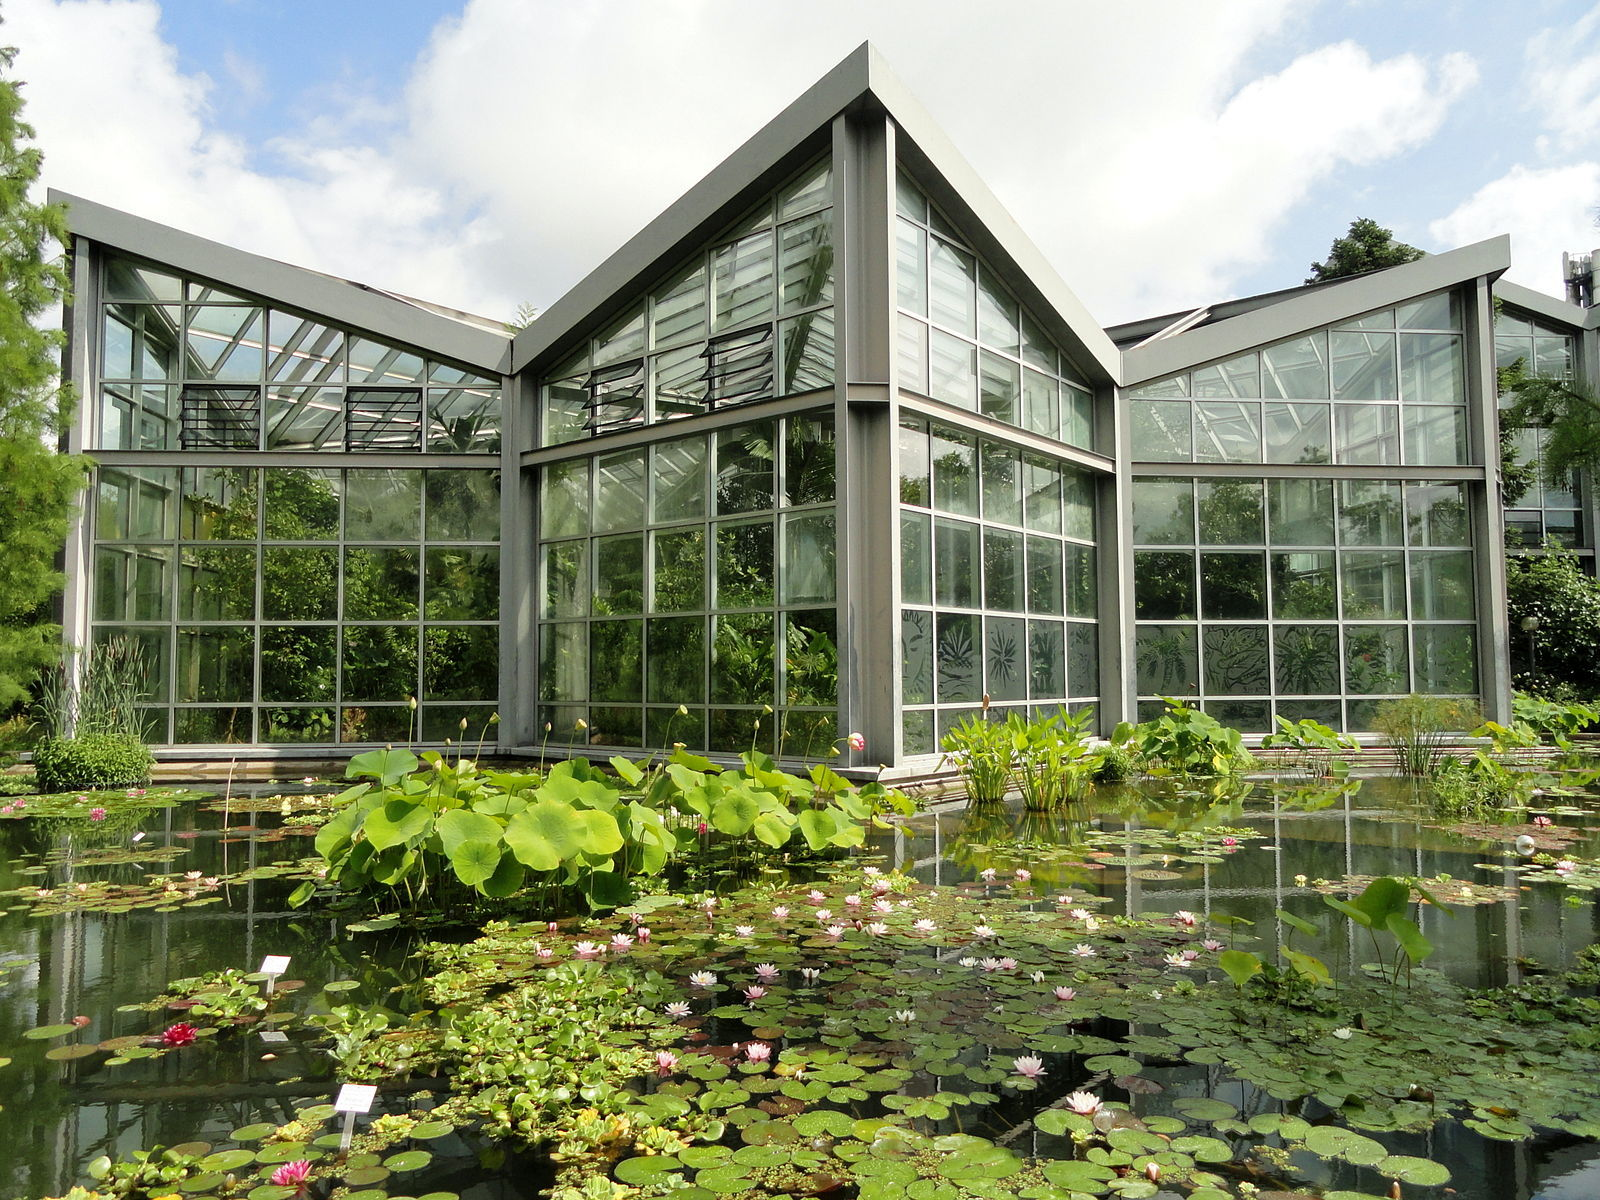 The Tropicarium Greenhouse at PalmenGarten